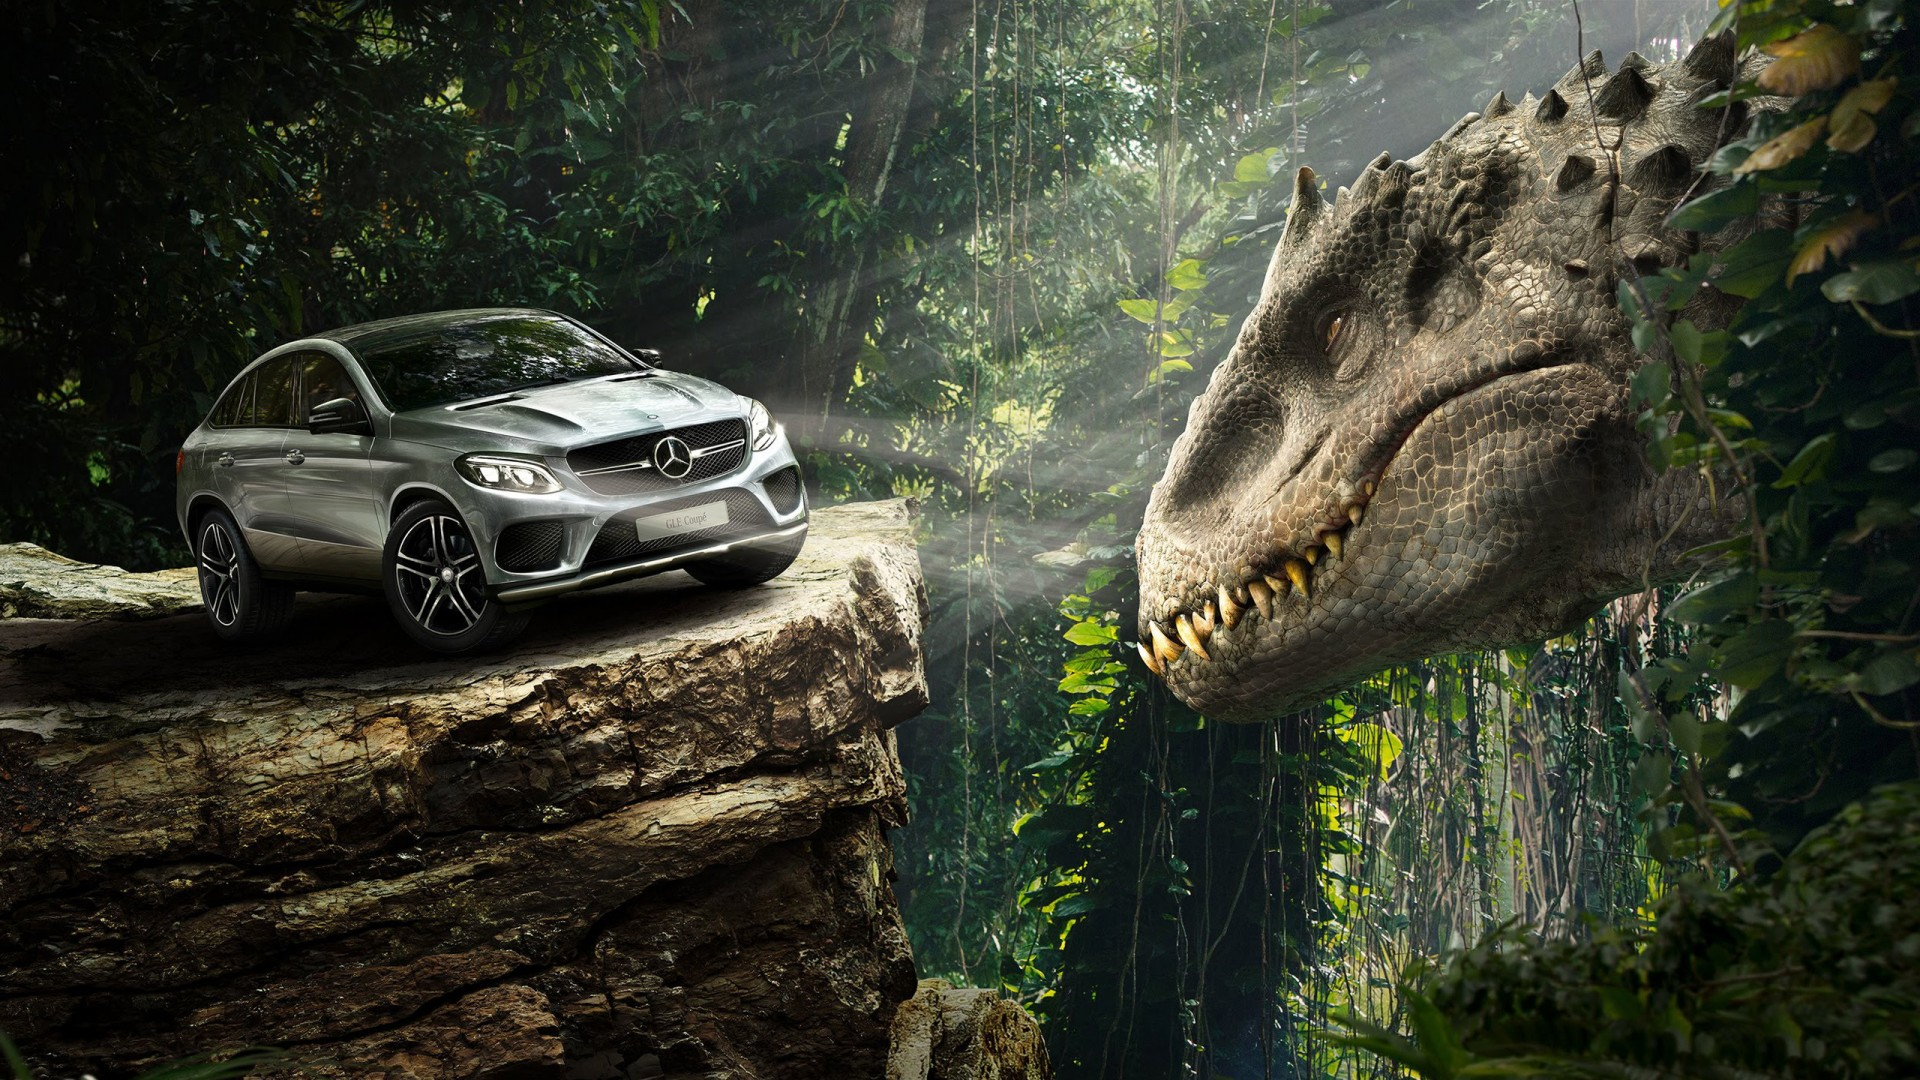 Car And Bikes Wallpapers Free Download Mercedes Benz Gle Coupe Jurassic World Wallpapers Hd